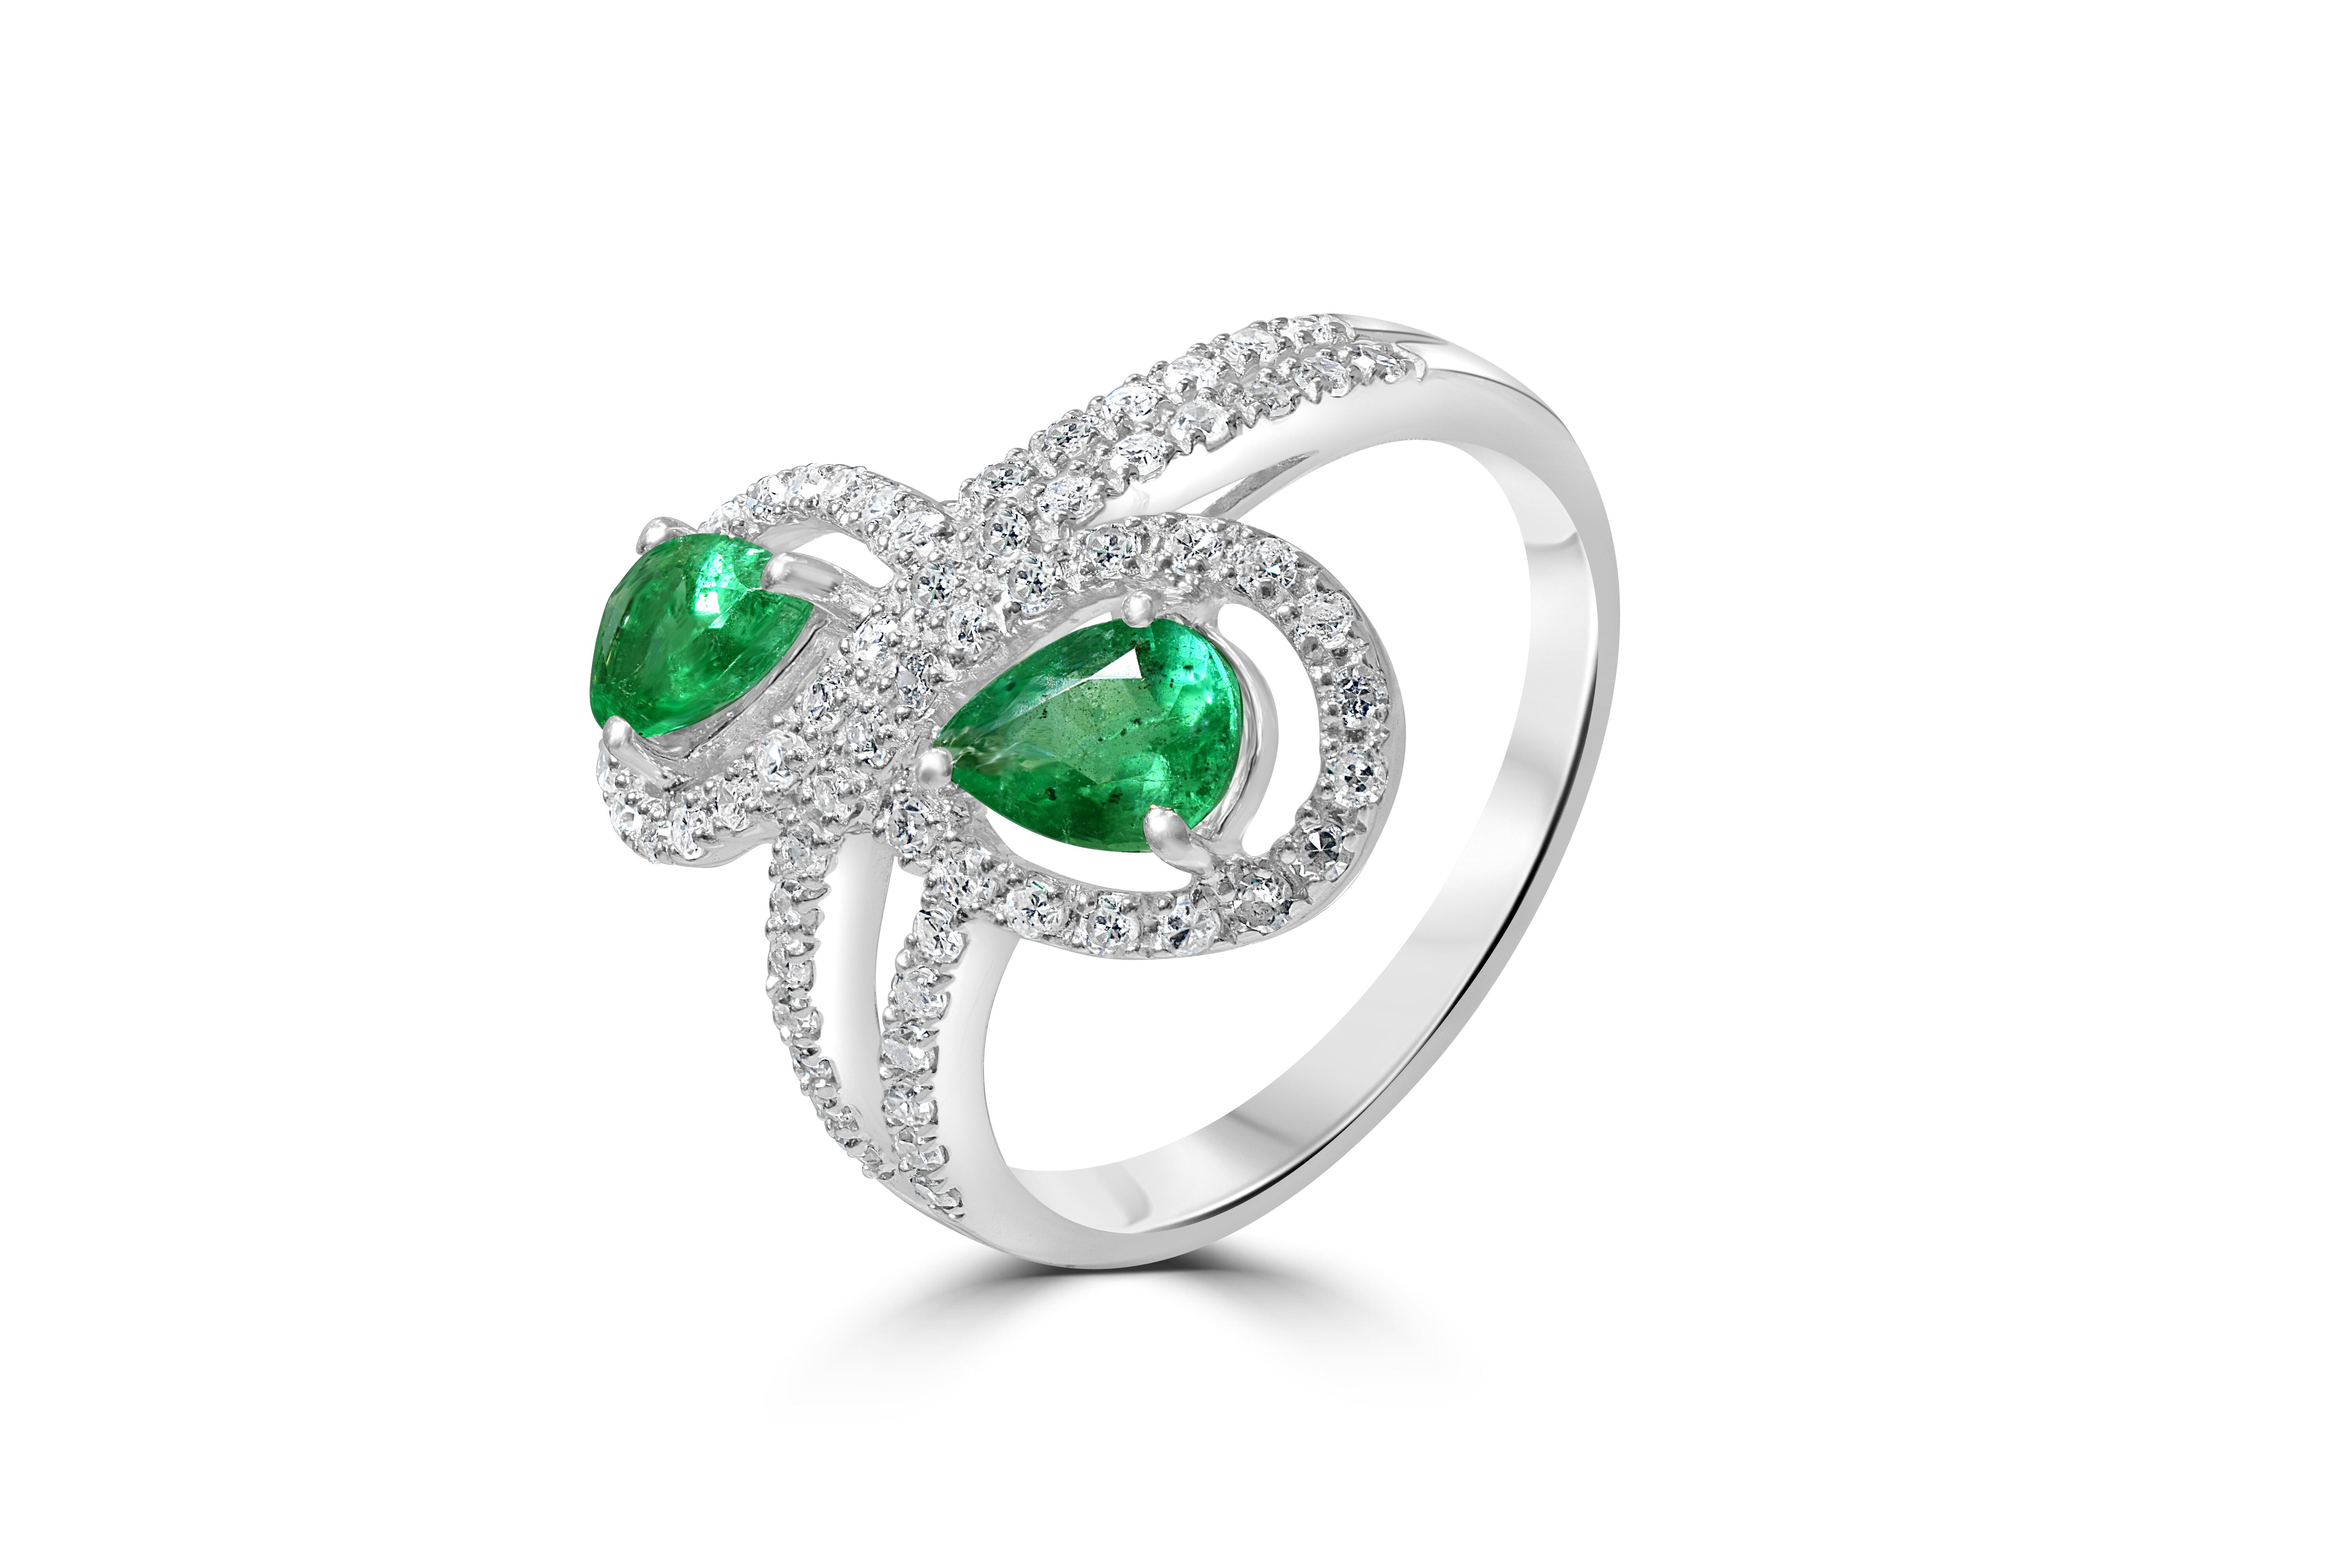 Two Stone Emerald and Diamond 9ct White Gold Ring RRP £2695 Size O